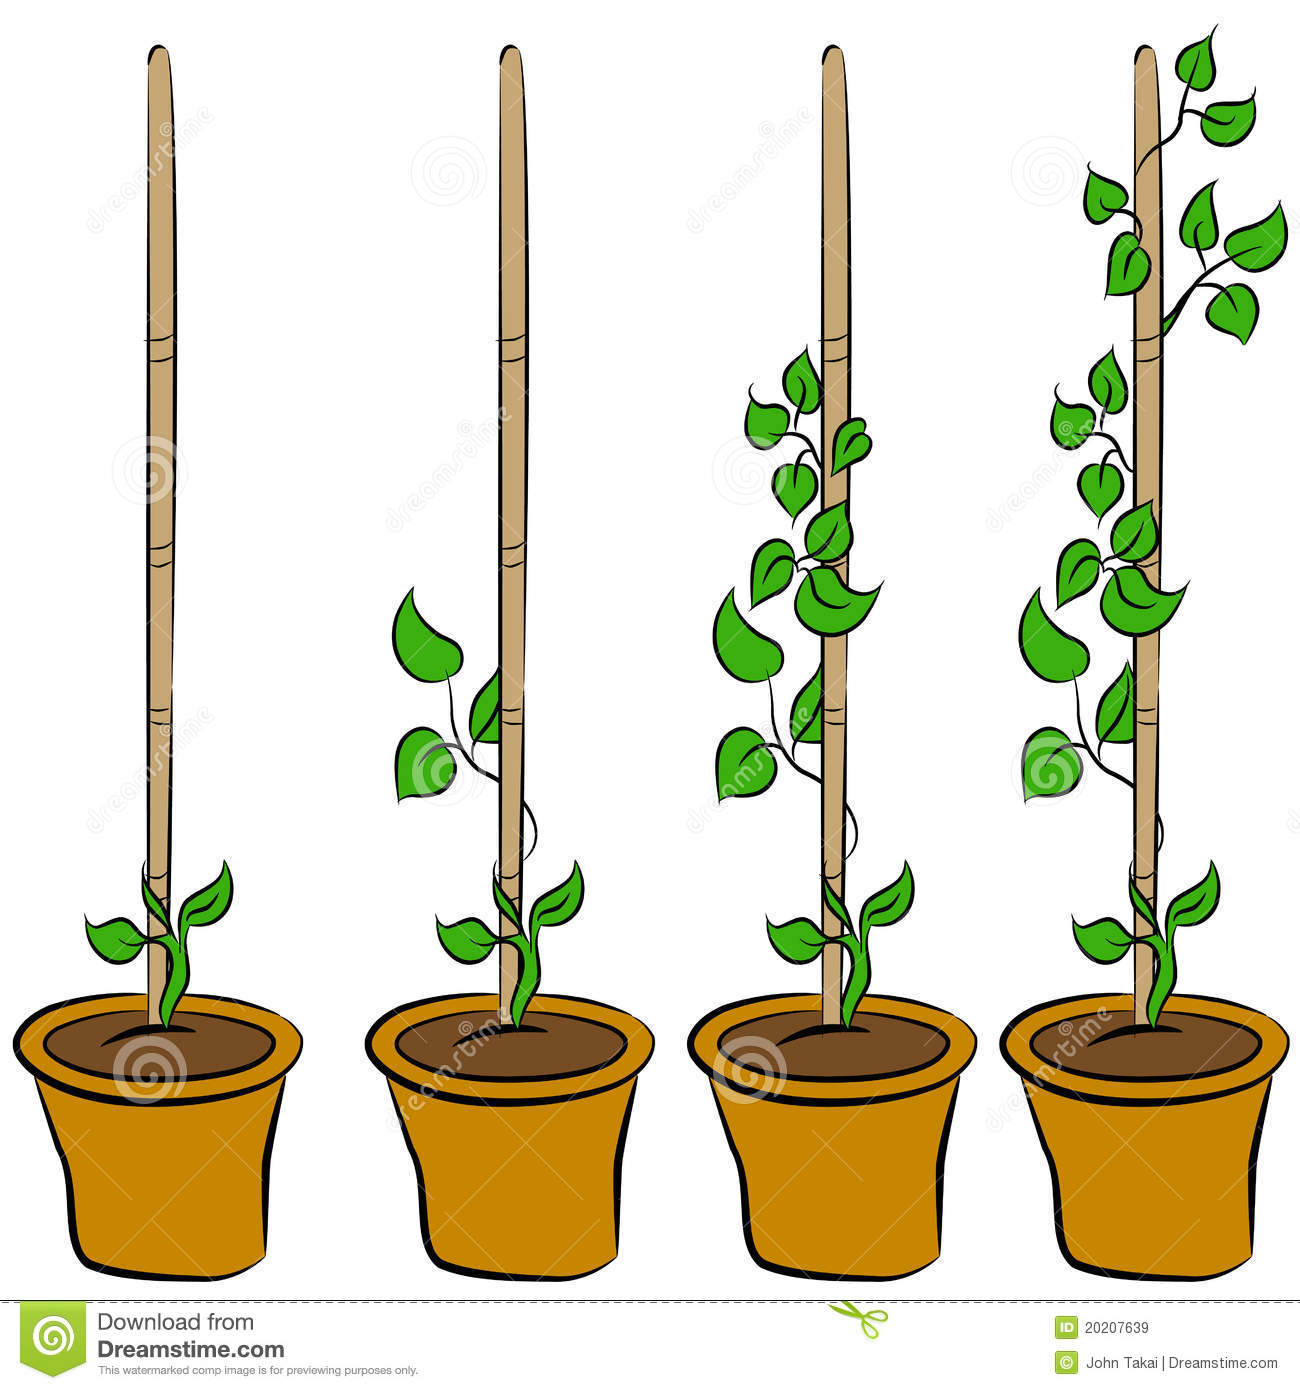 Plant growing clipart.